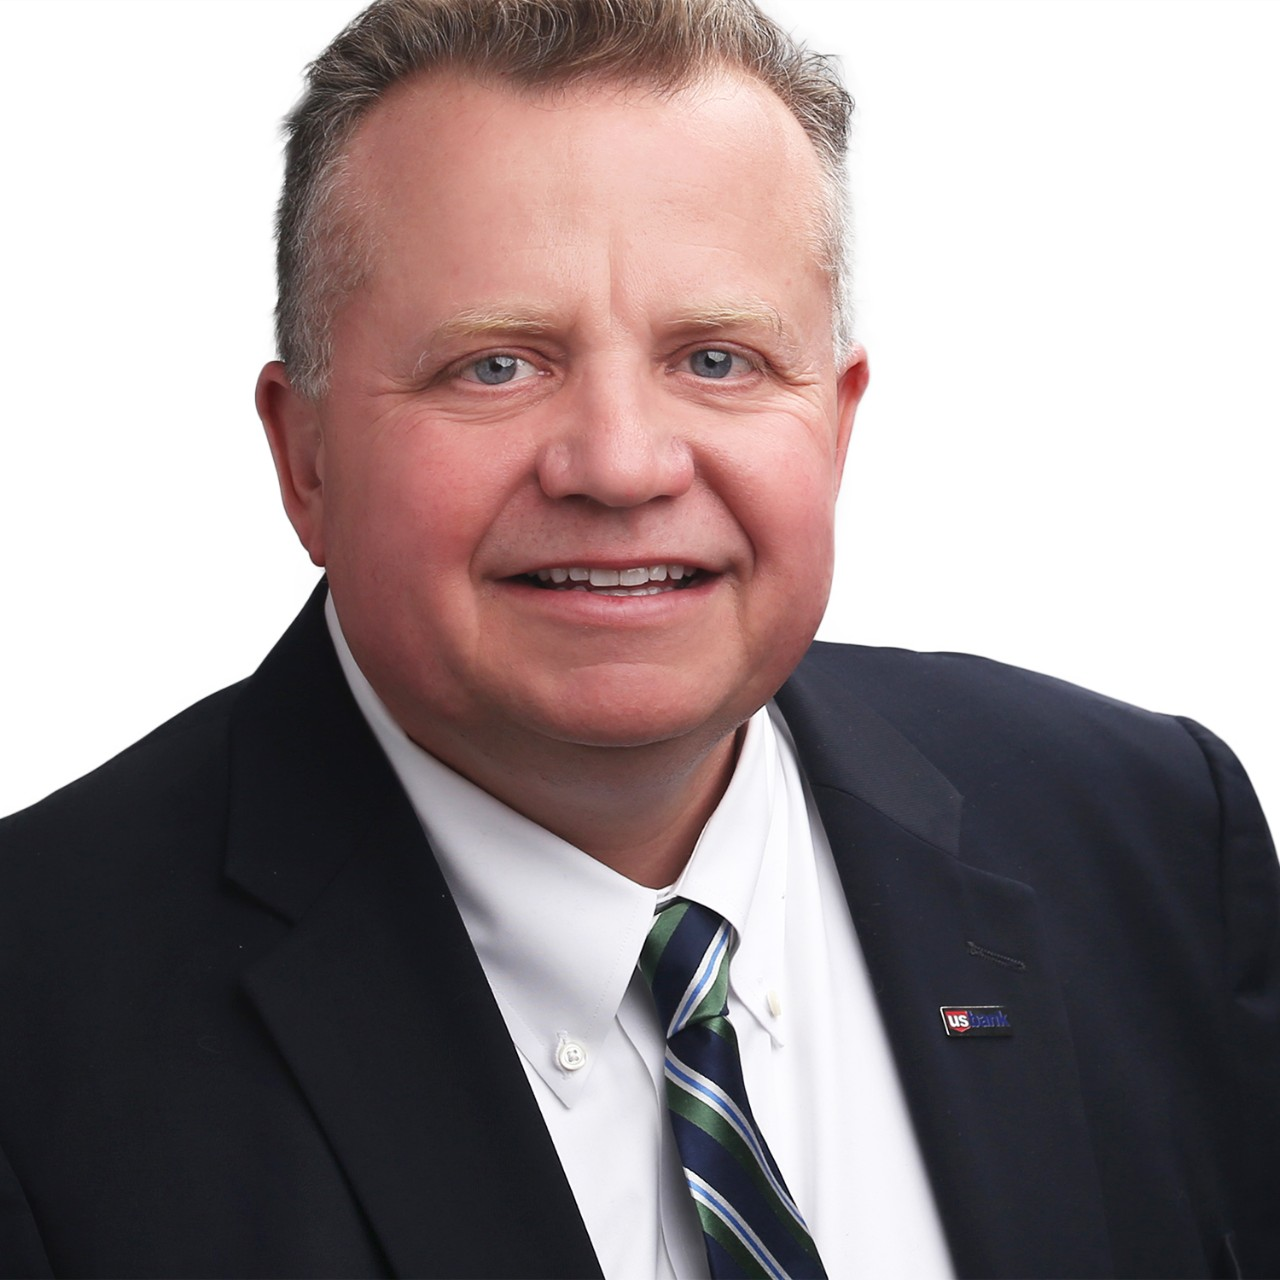 Andrew Wilson | WM Investment Portfolio Mgr | Oshkosh, WI | U.S. Bancorp Wealth Management